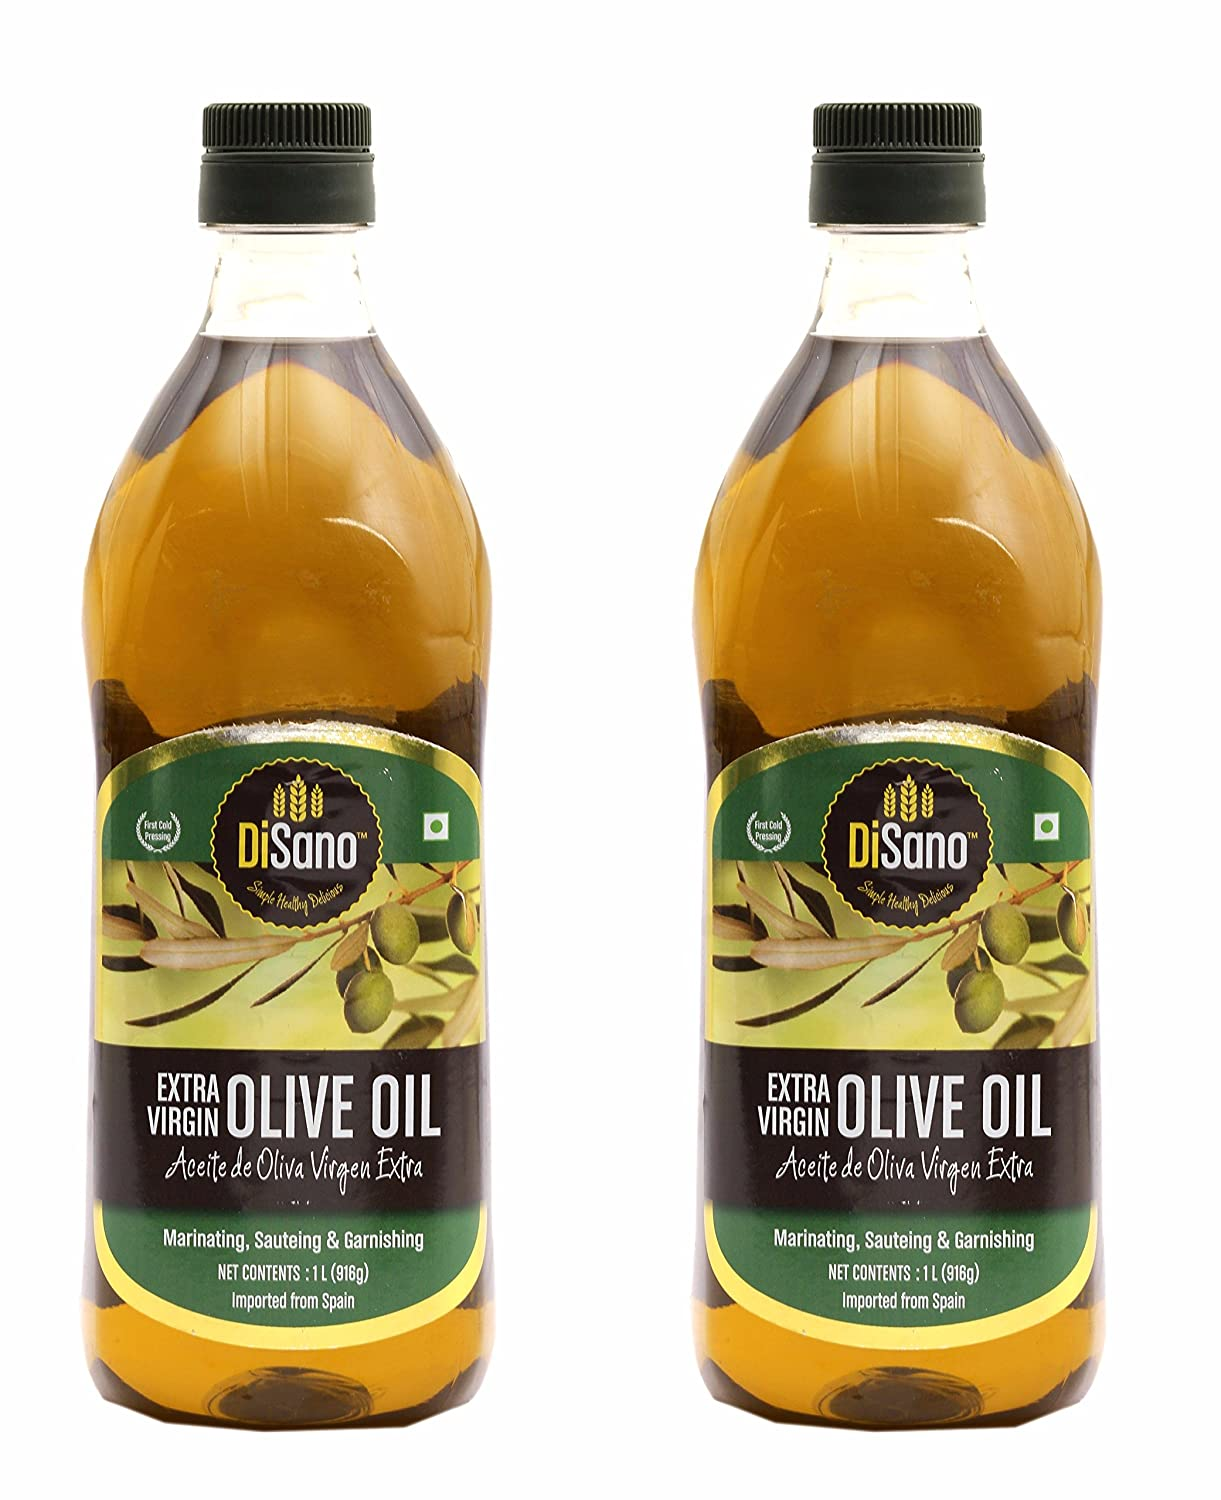 DiSano Extra Virgin Olive Oil, First Cold Pressed, 1L (2 x 1L